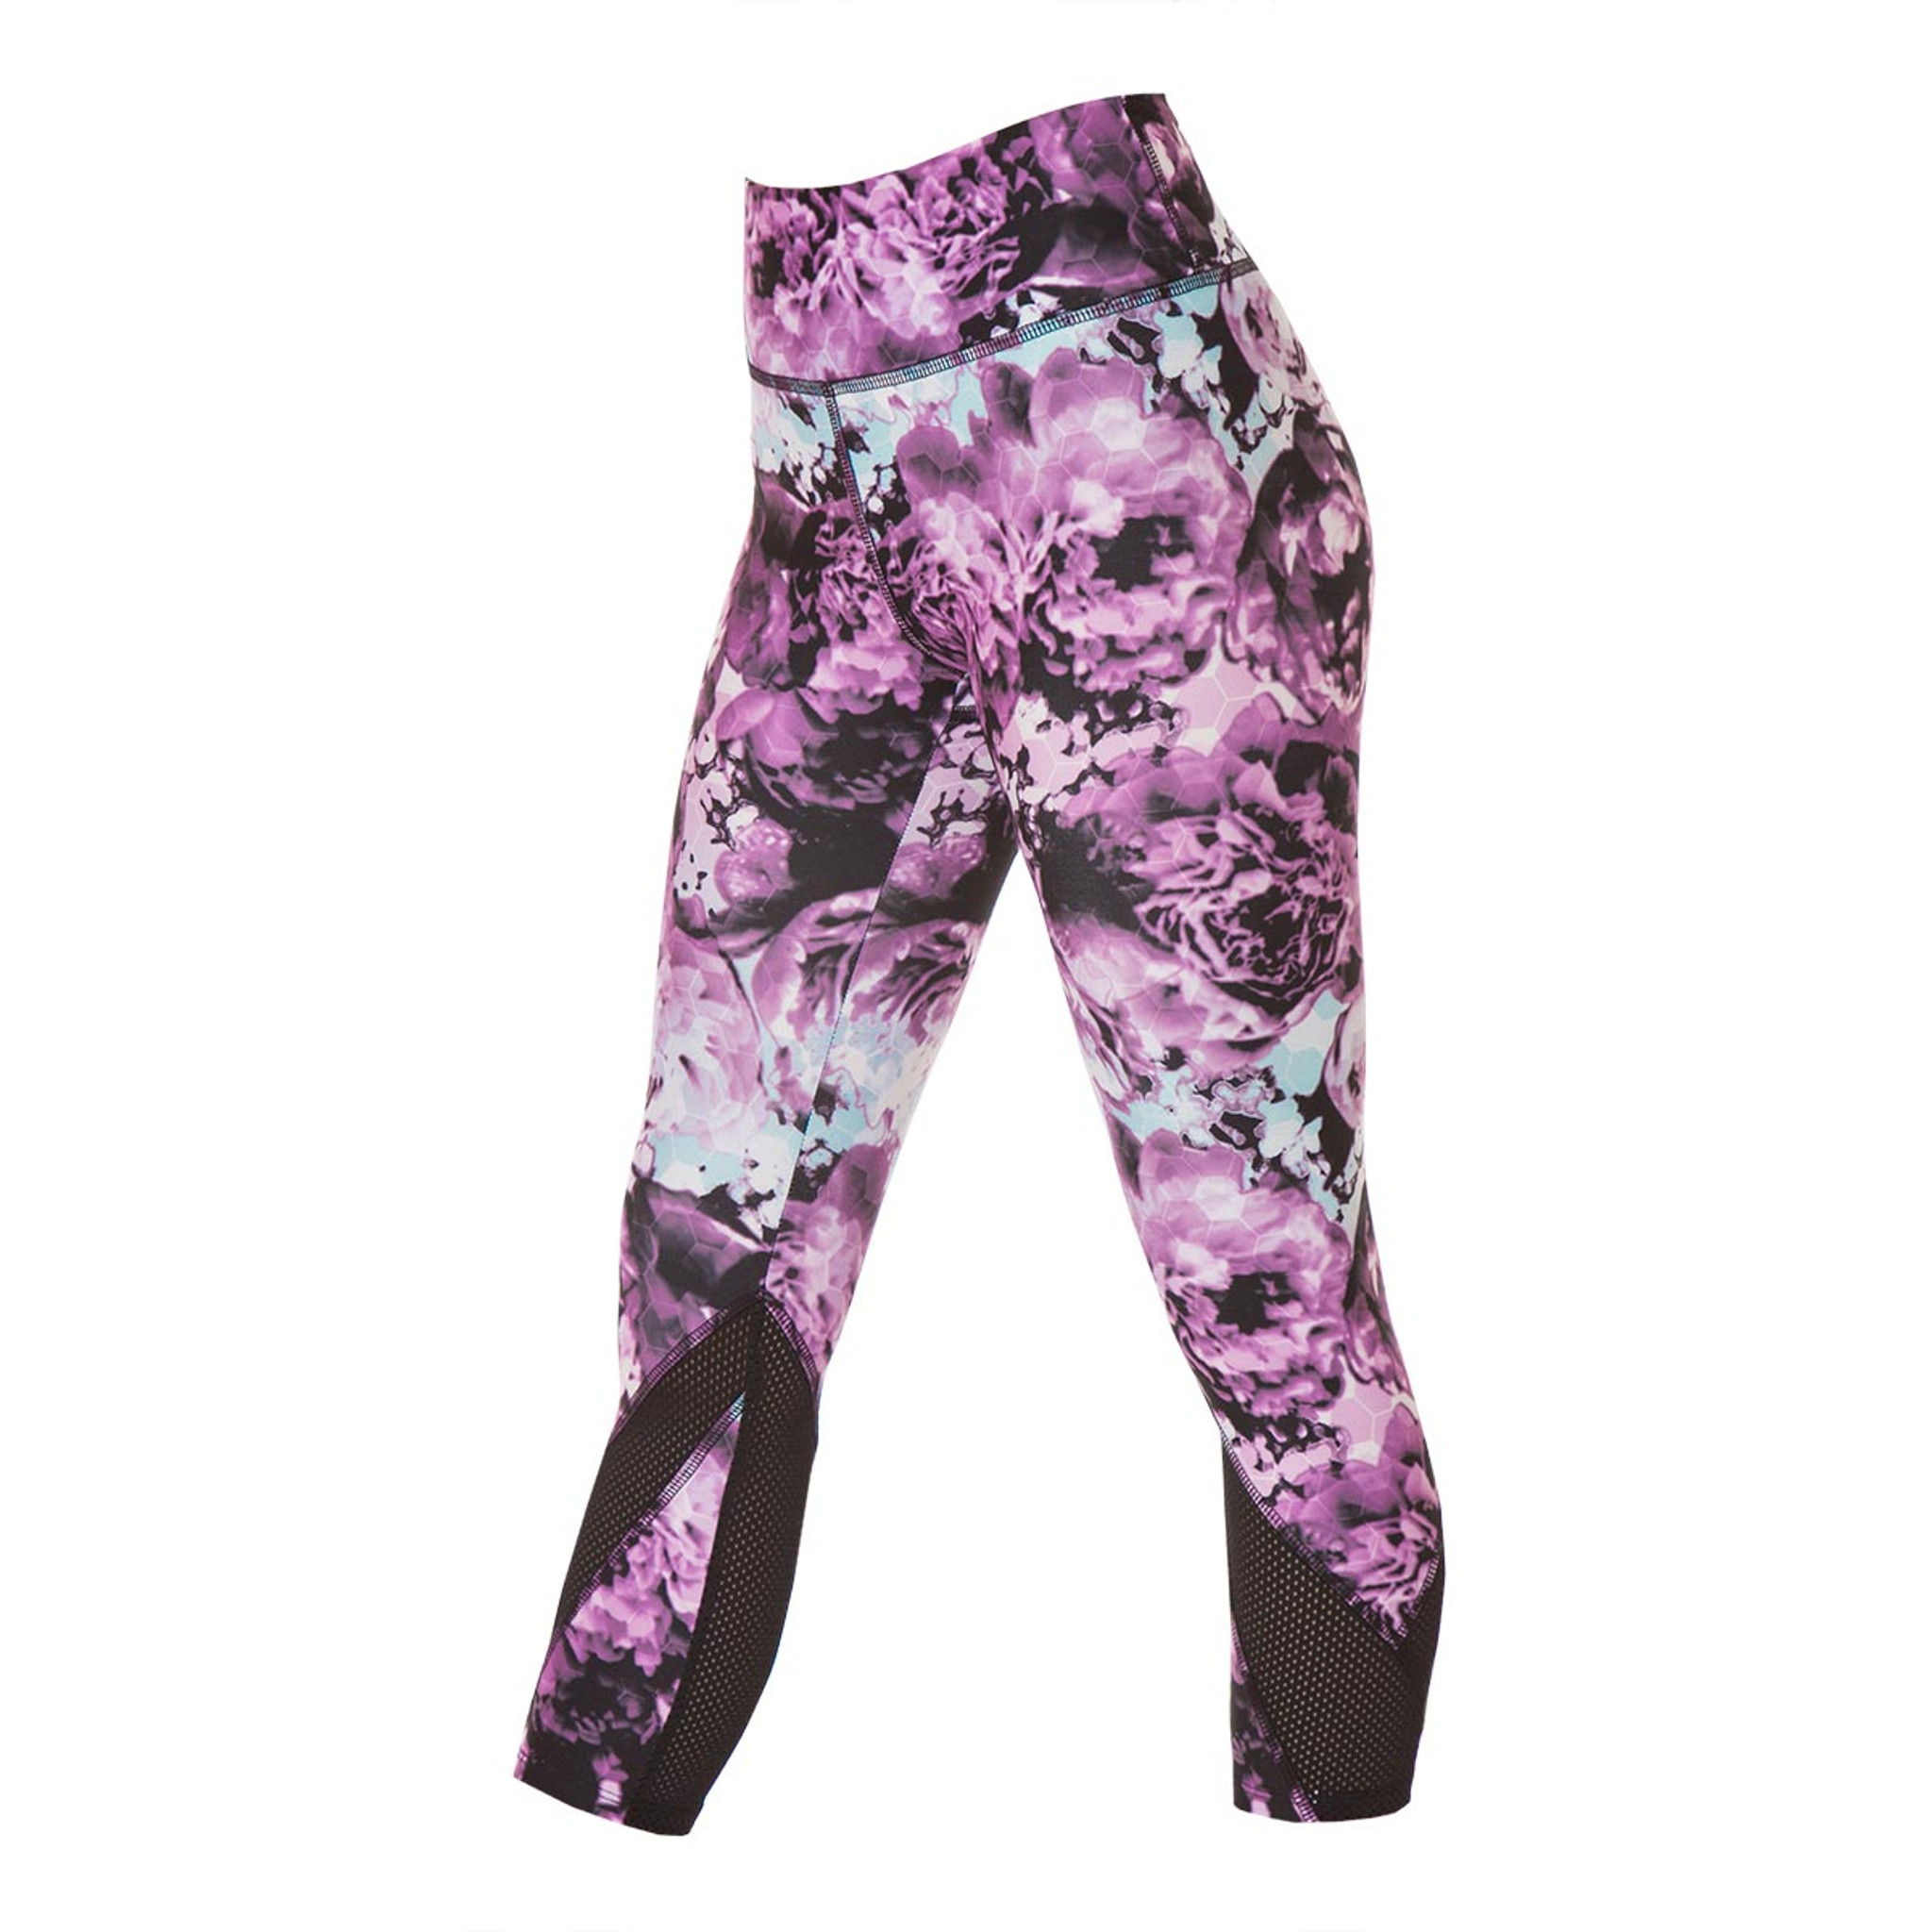 Energetiks Bailey 7/8 Legging - Florise Collection - Ladies